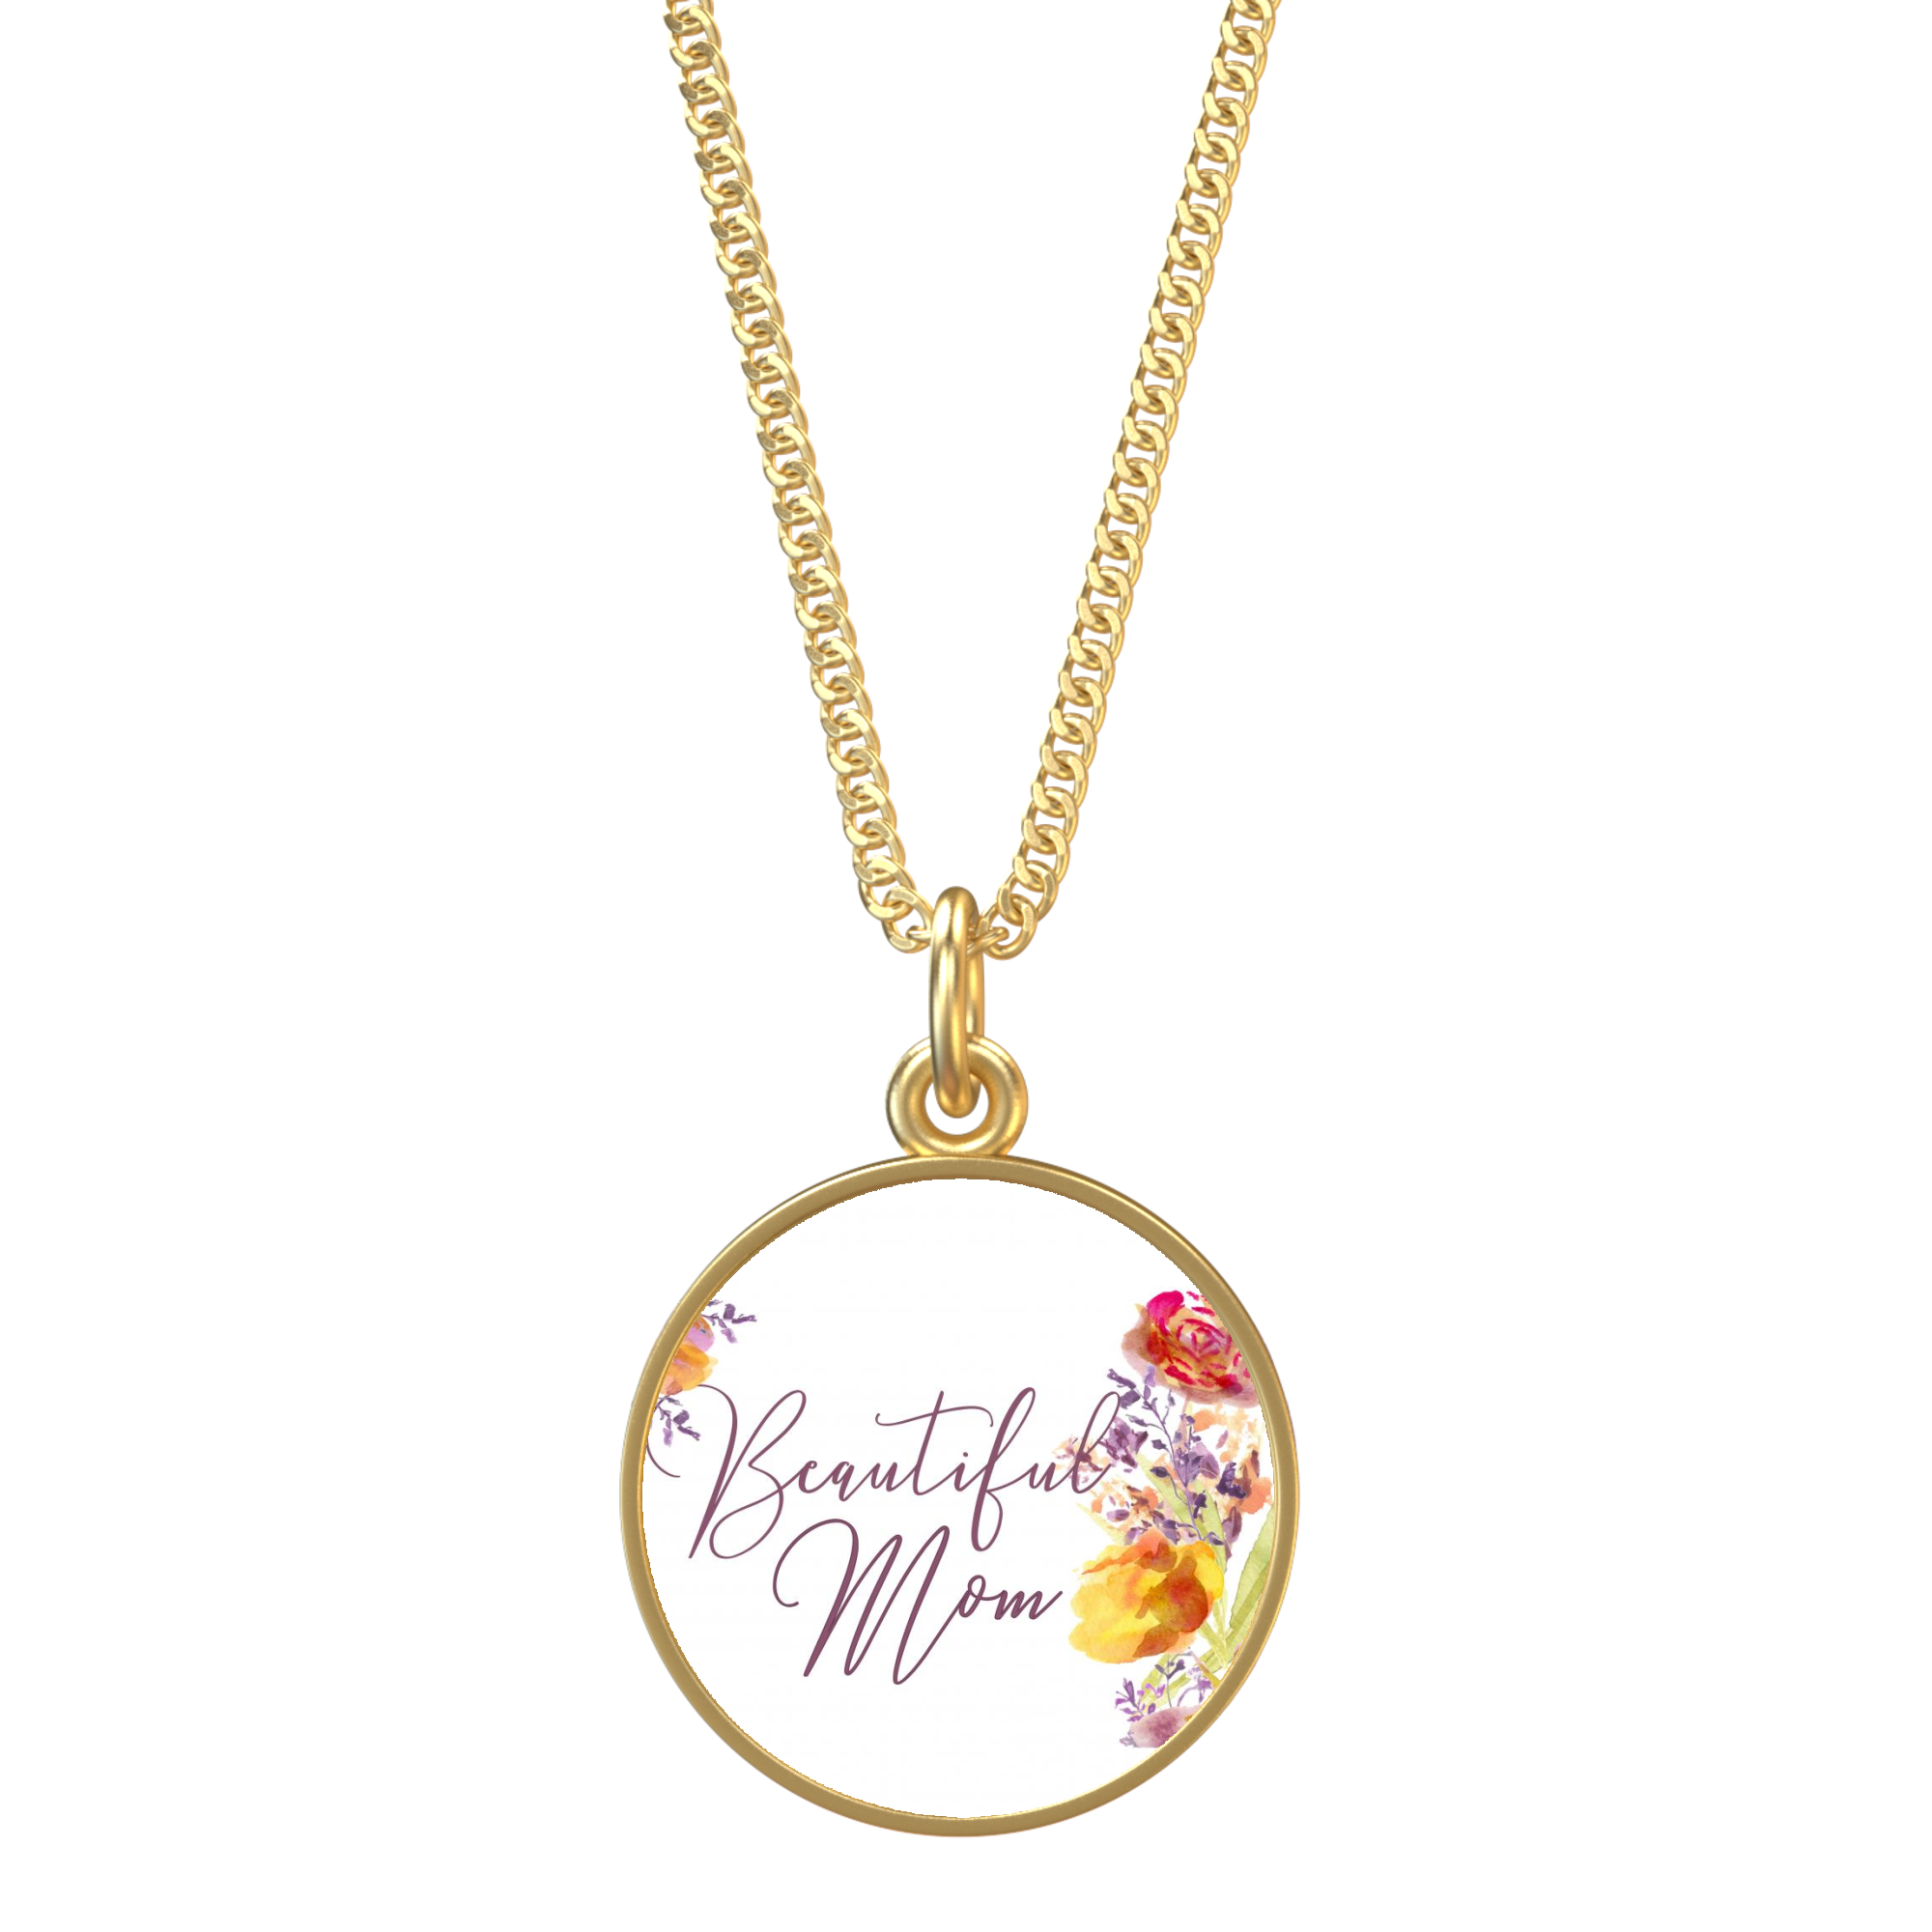 Necklace clipart round gold. Beautiful mom dahlilah dreams